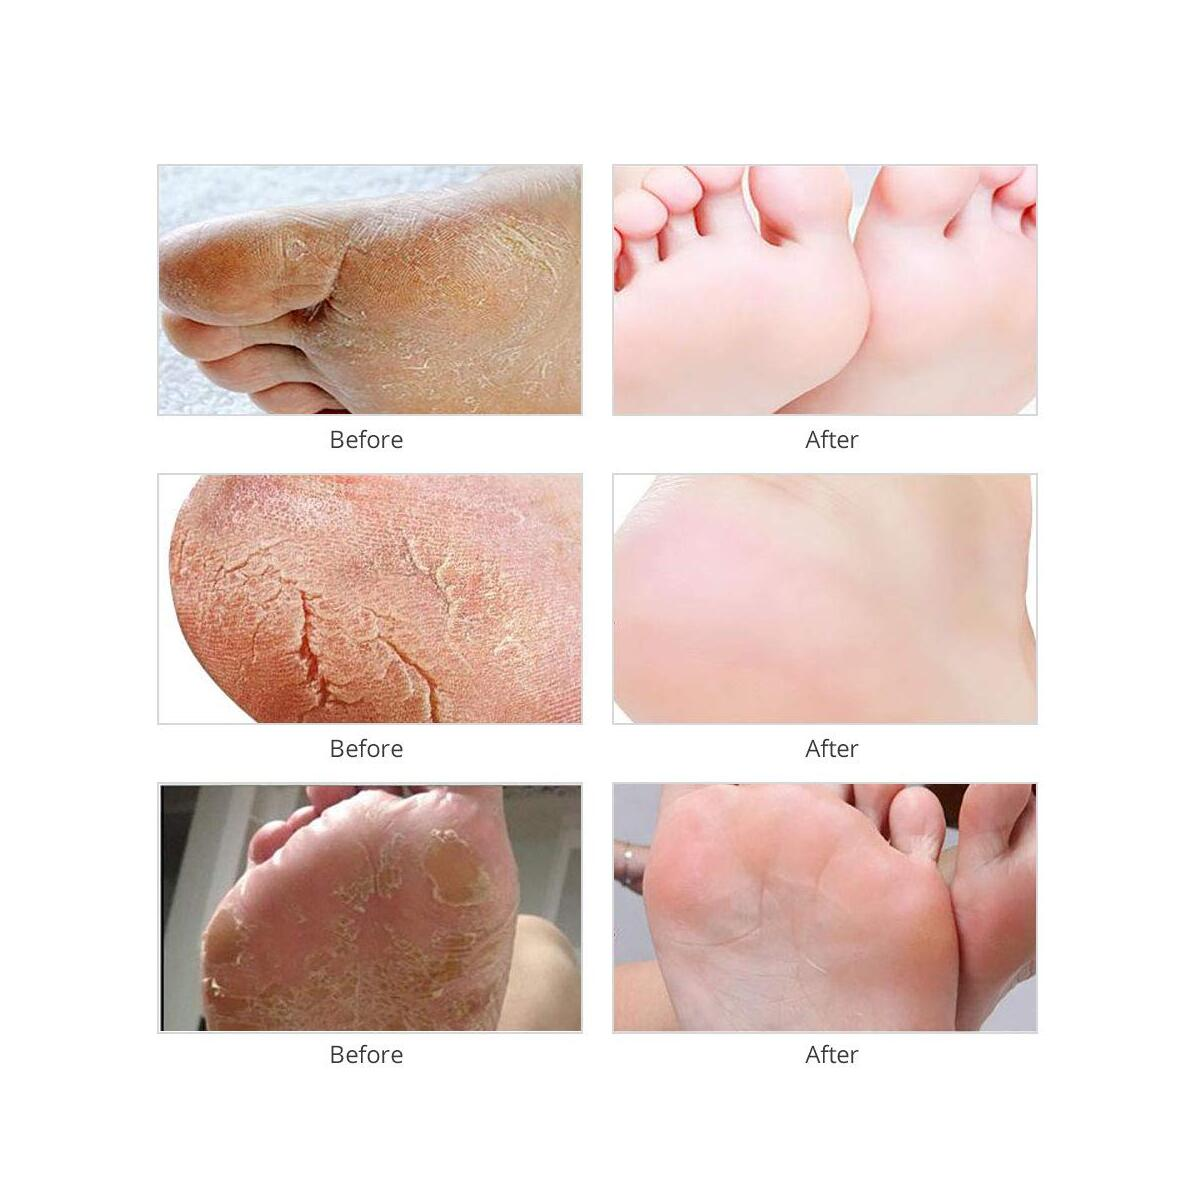 Voglily Foot Peel Mask Exfoliating Booties for Peeling Off Calluses & Dead Skin, Exfoliant for Soft baby Feet, Men & Women Upadted Version 2 Pack